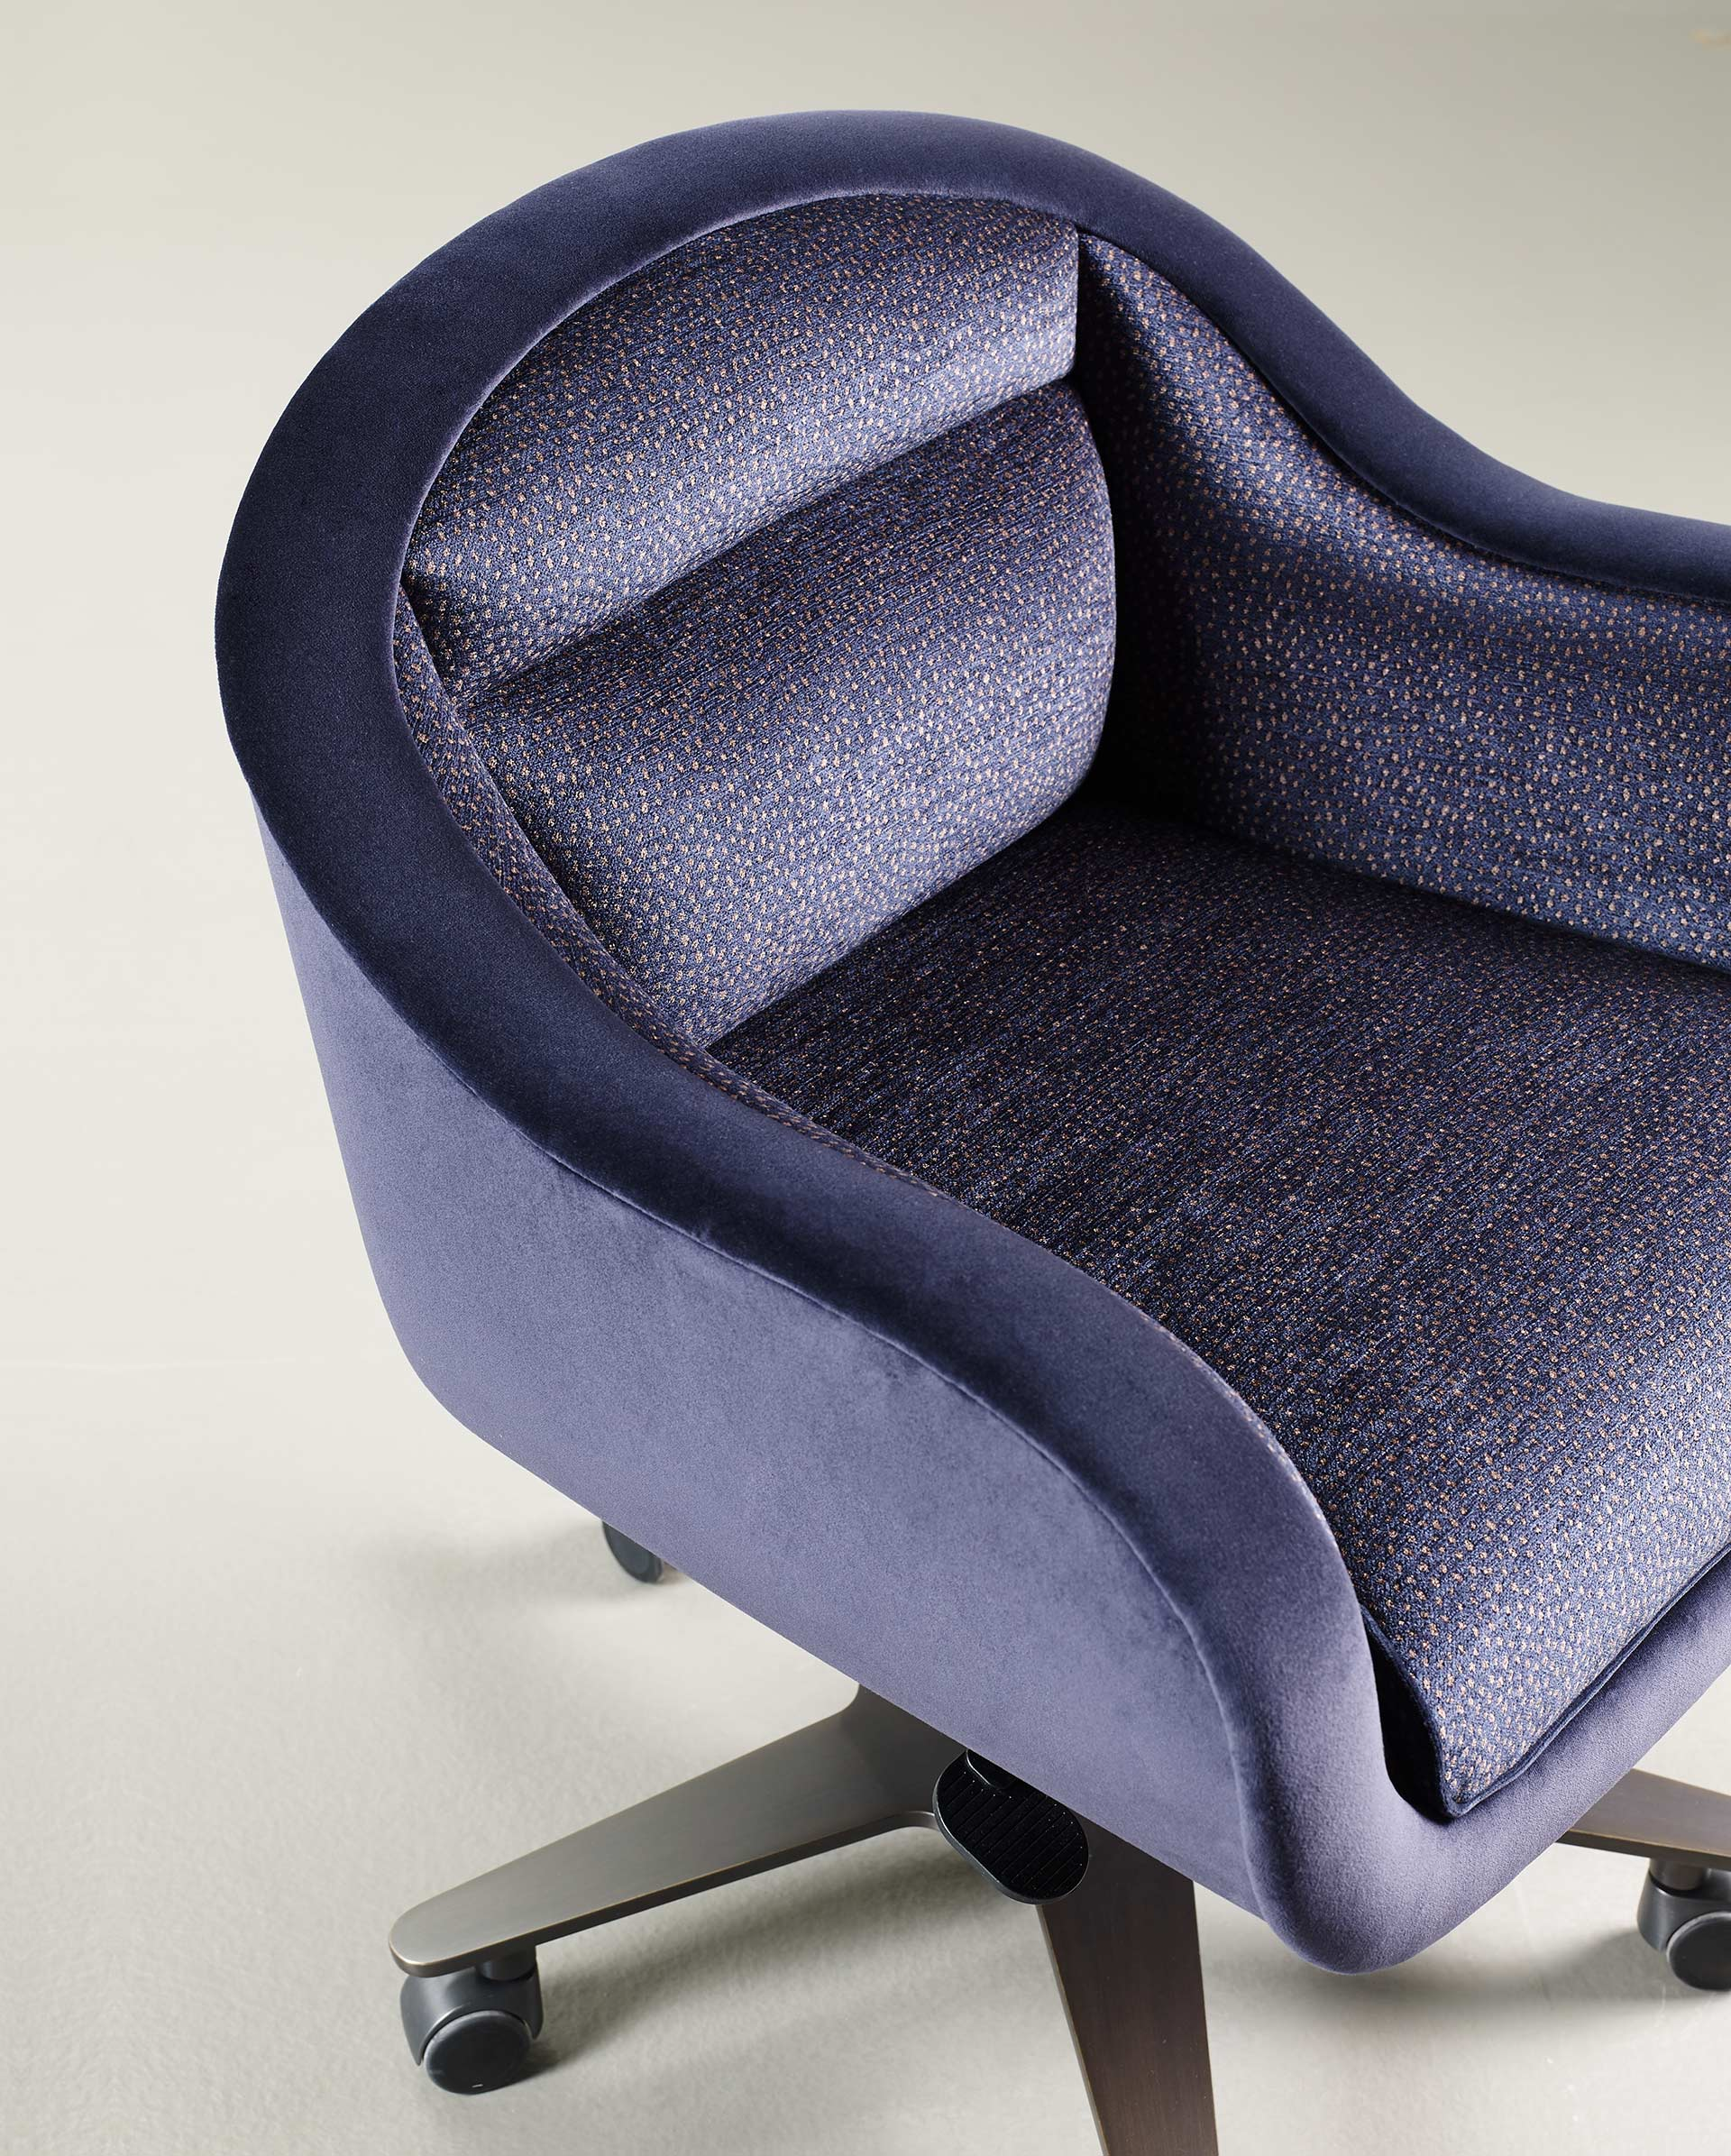 Vittoria is an office chair with a metal or bronze base, covered in fabric or leather with a bronze handle on the back, from Promemoria's catalogue | Promemoria